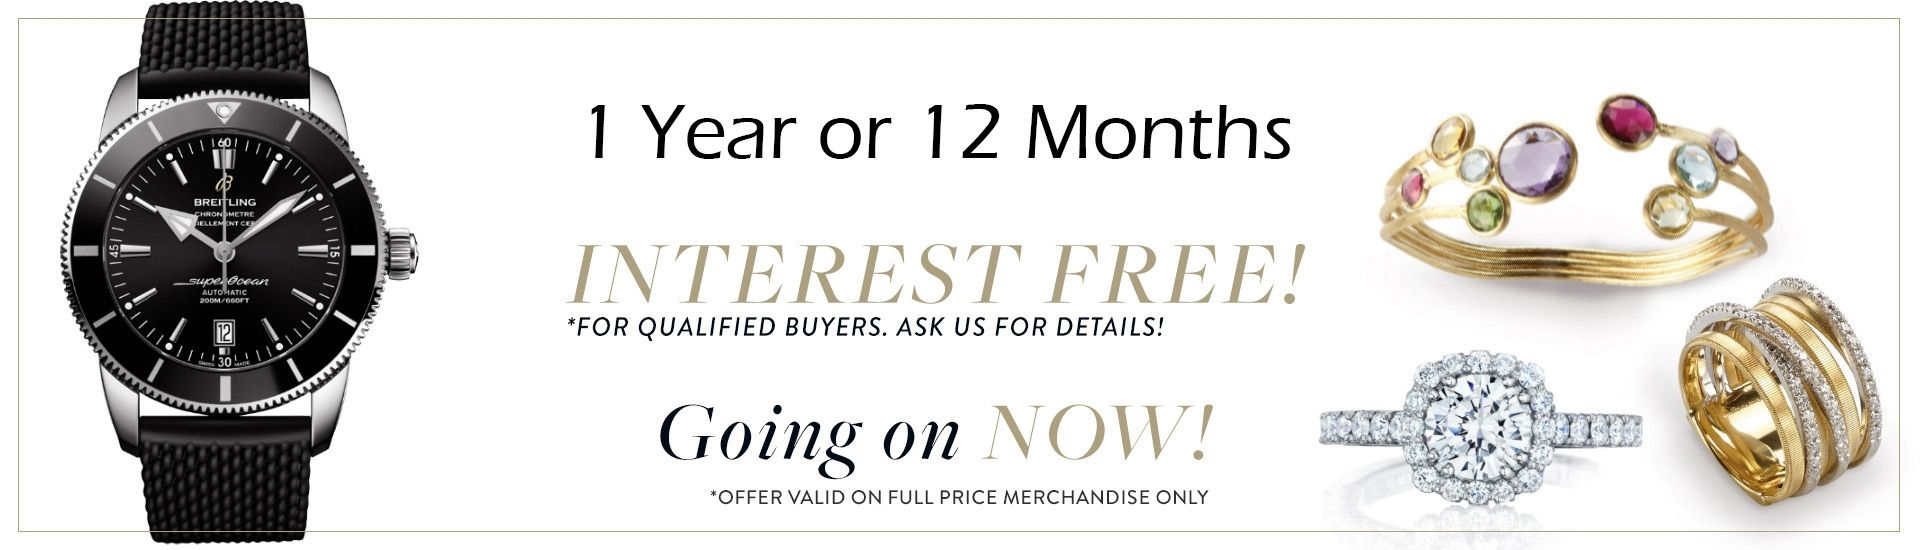 1 year or 12 months Interest FREE!